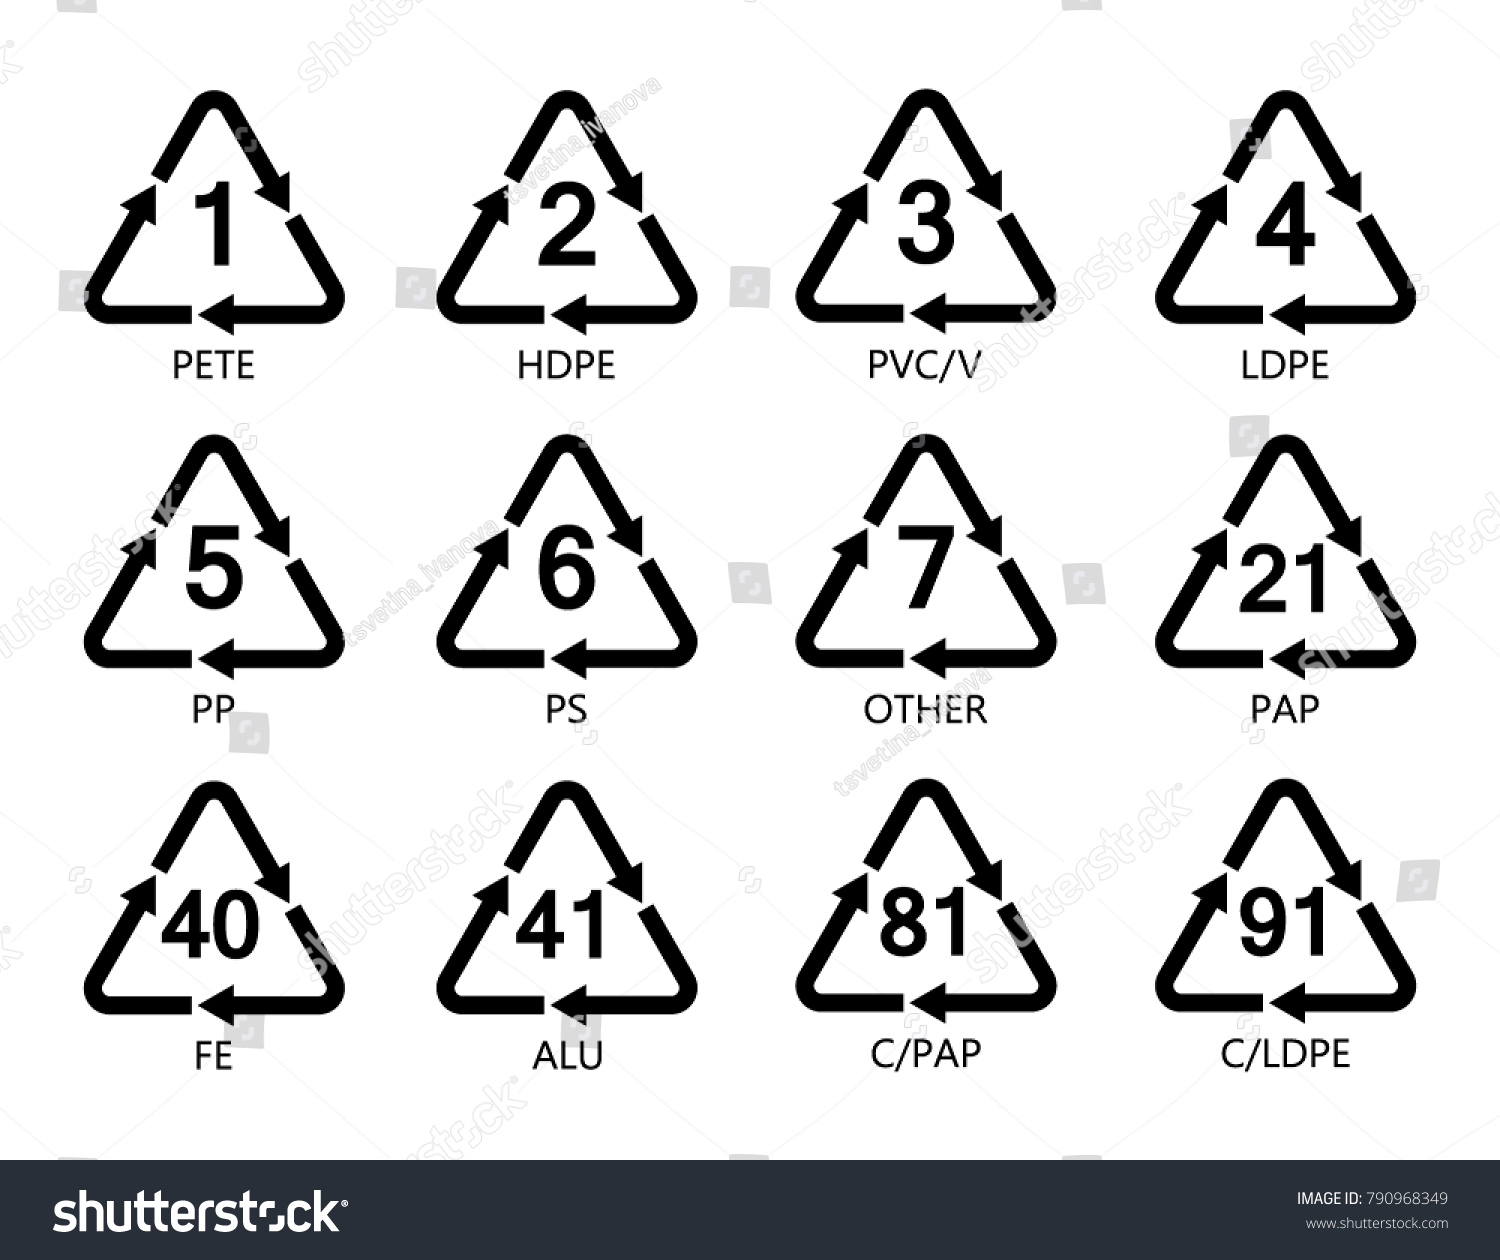 Resin Identification Code Icons Set Marking Stock Vector Hd Royalty